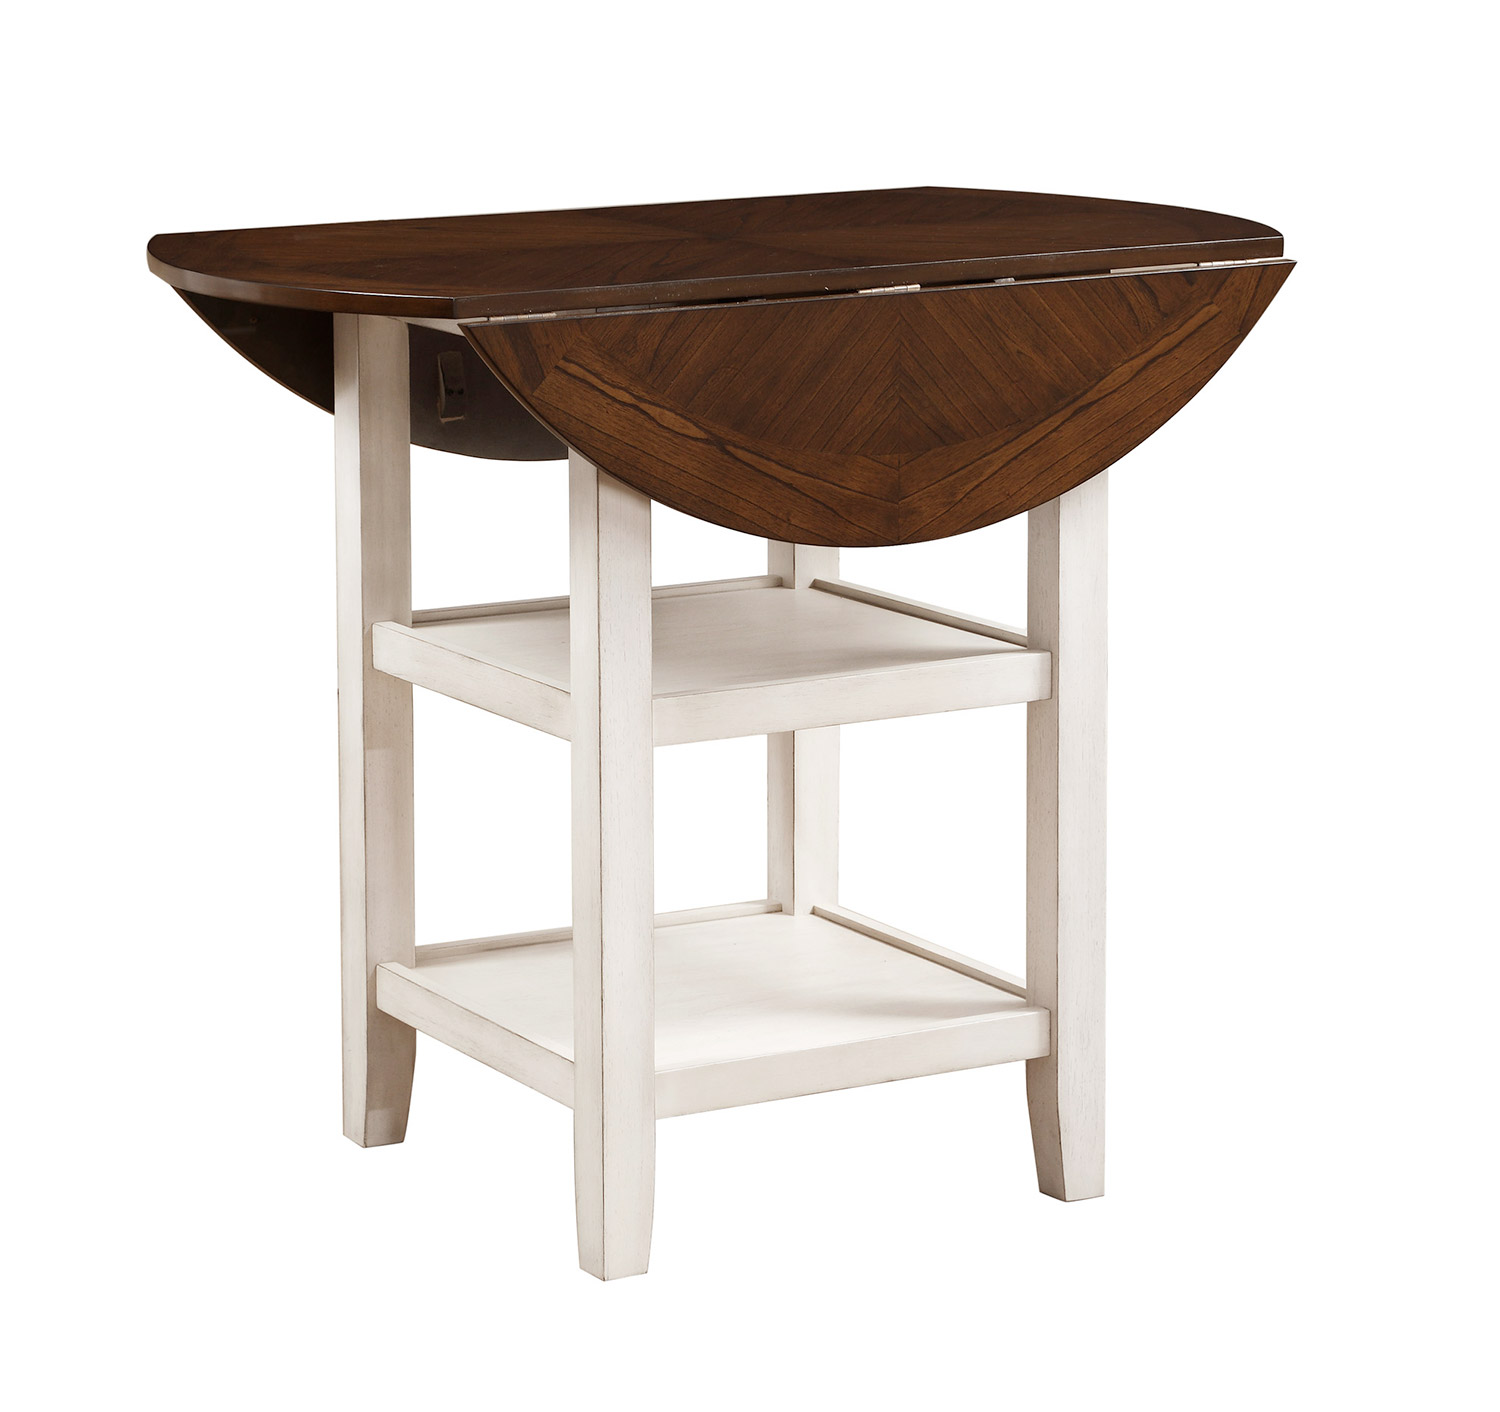 Homelegance Kiwi Counter Height Drop Leaf Table - White Wash - Dark Cherry